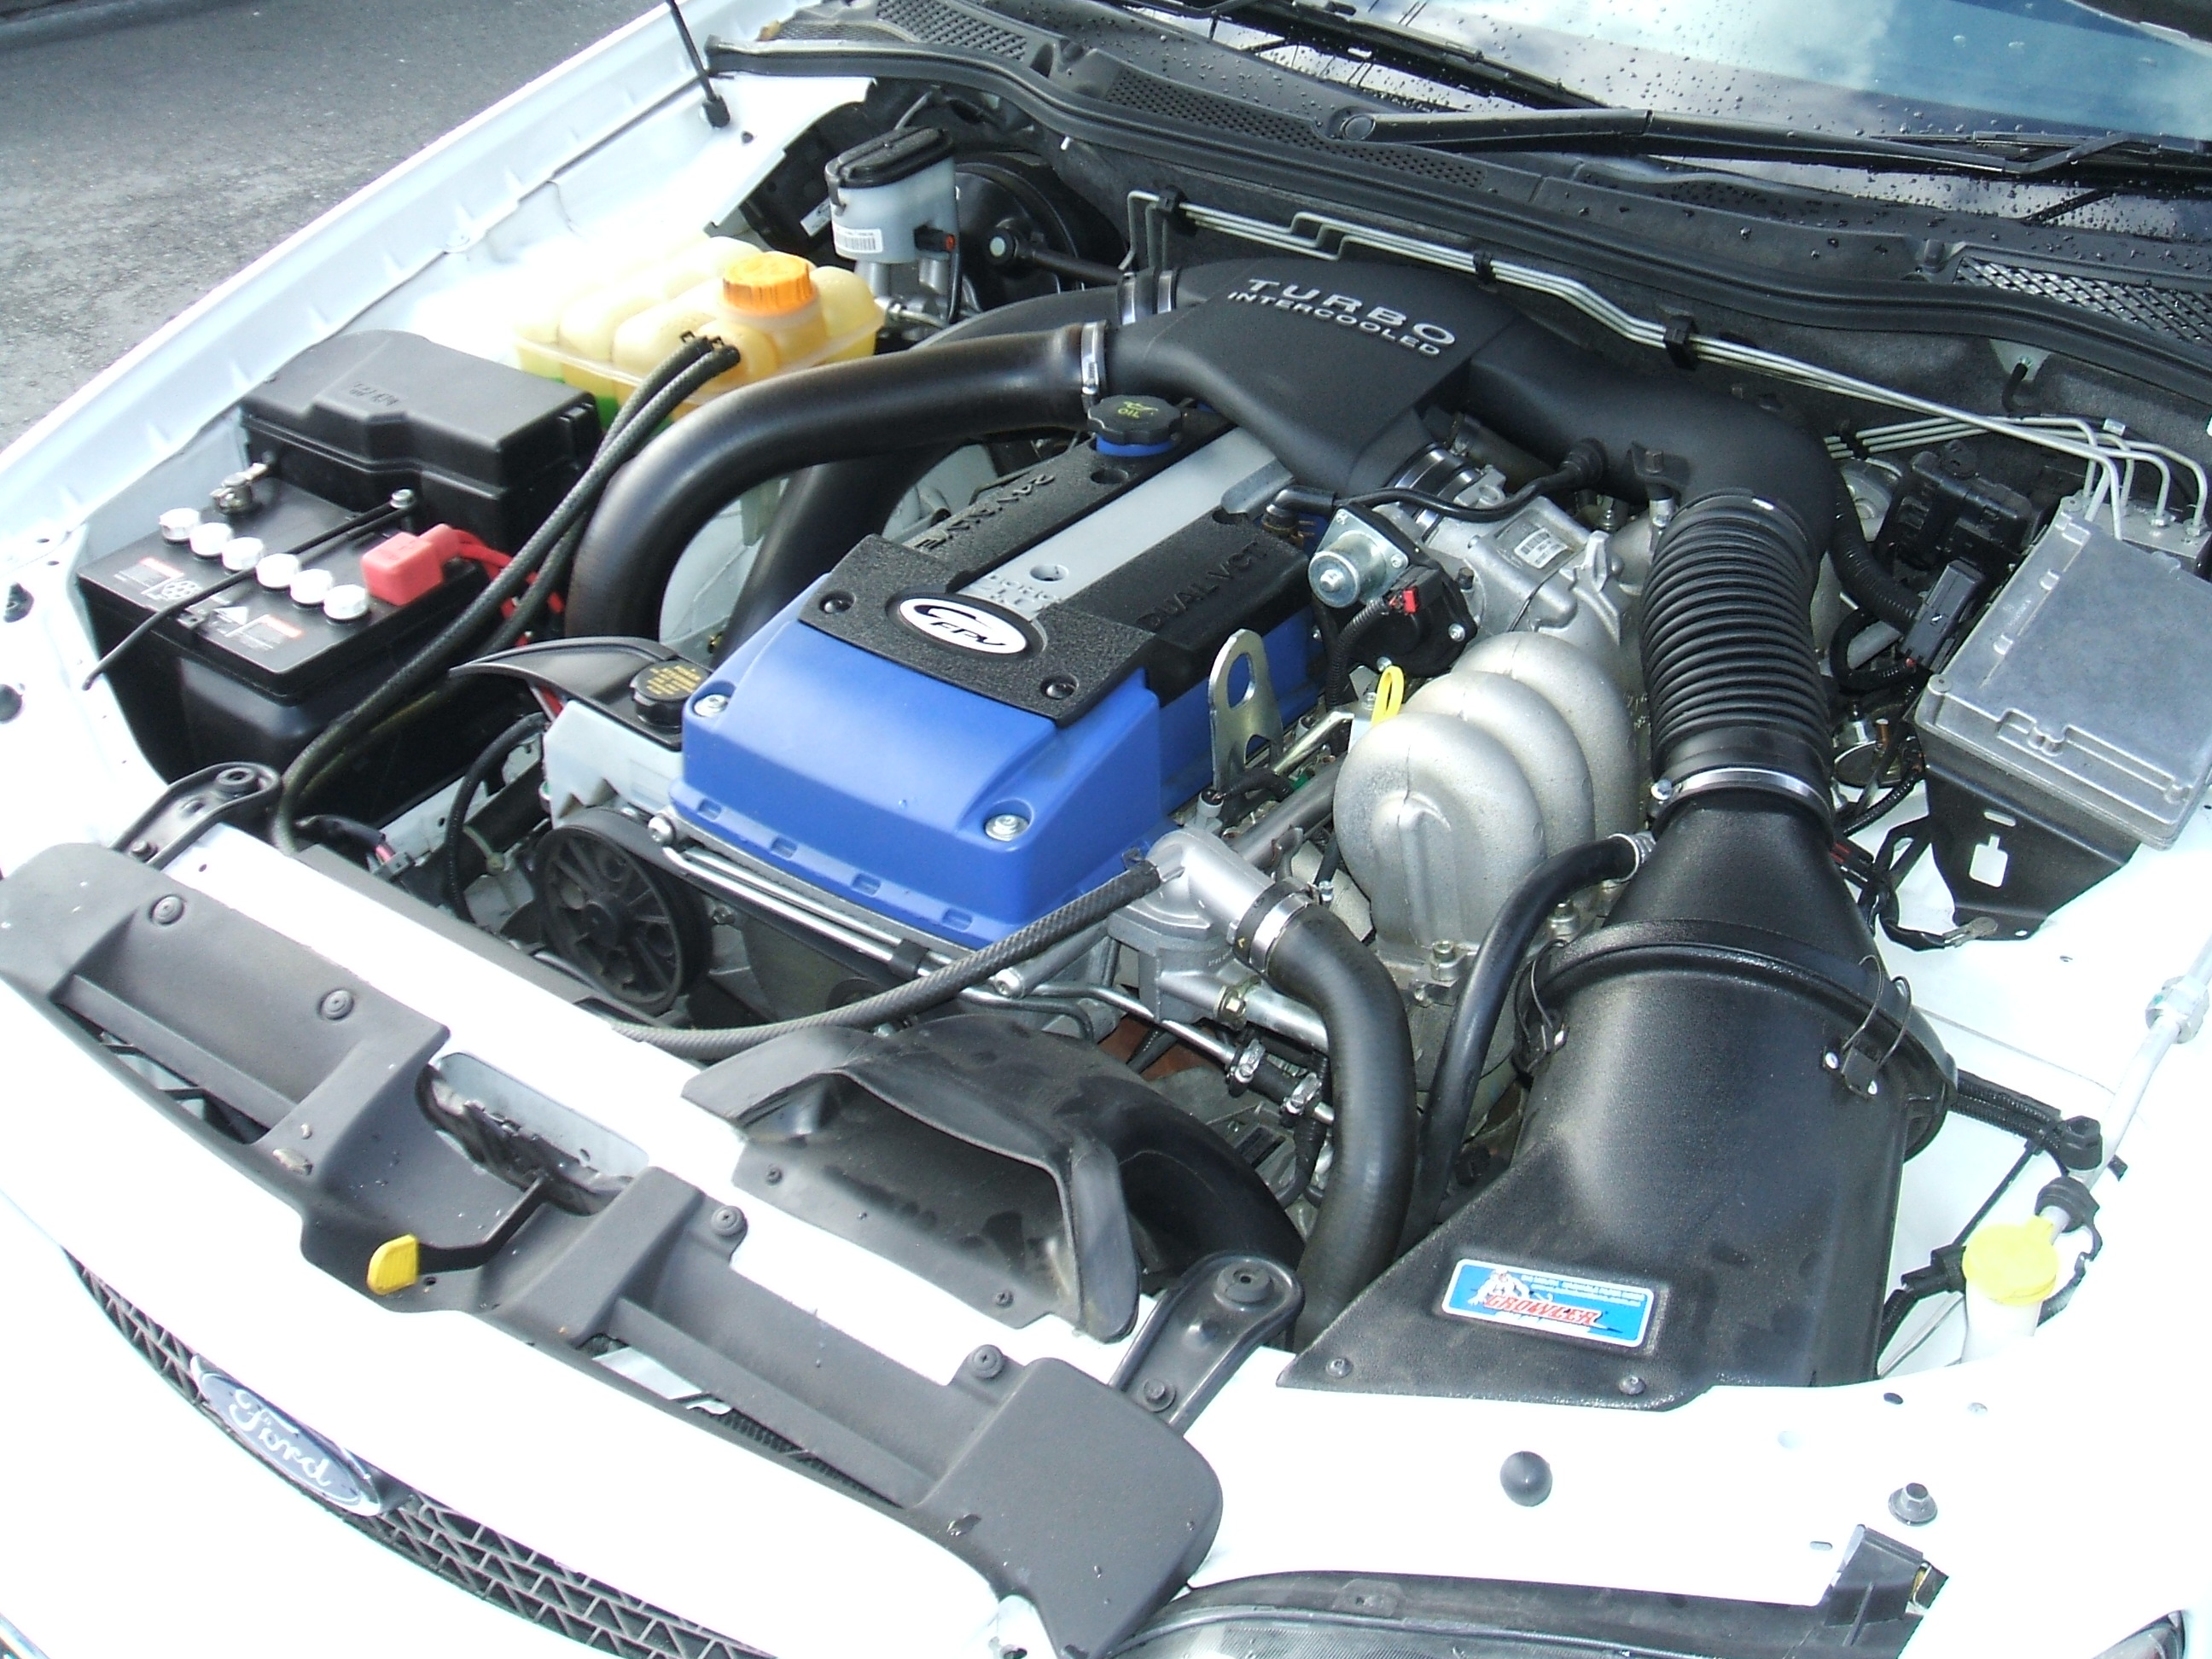 Ford Falcon Ba Bf Xr6 Turbo And F6 Power Upgrade Packages Nzefi Engine Bay